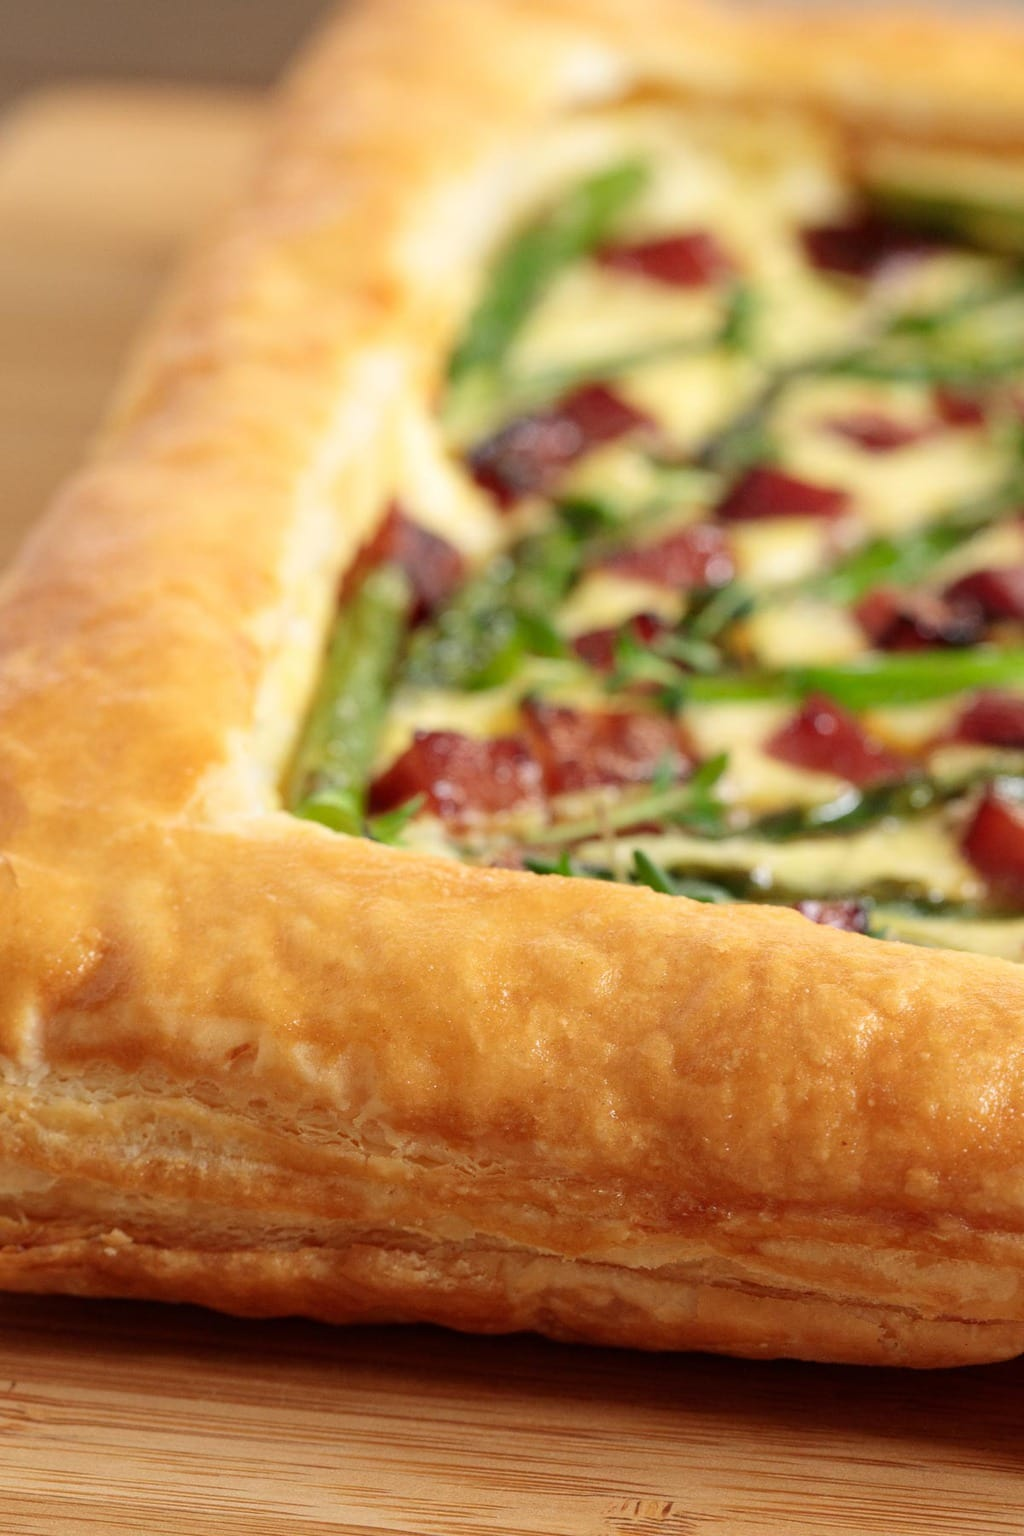 Extreme closeup of the crust of an Easy Savory Puff Pastry Tart.